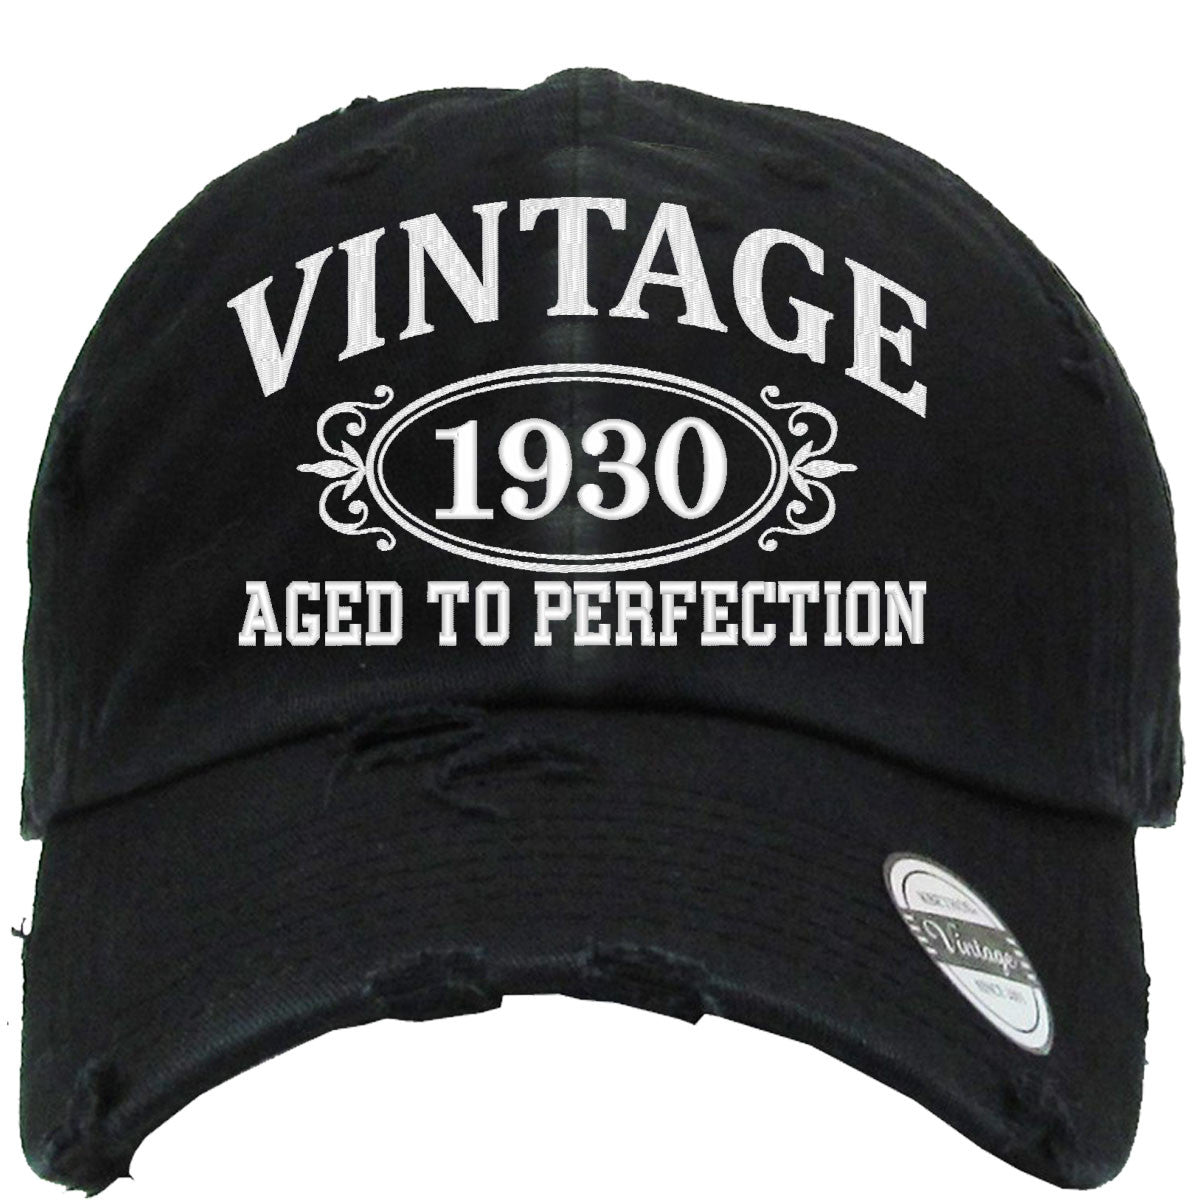 aged to perfection 1930 embroidered distressed baseball hat teeeshop